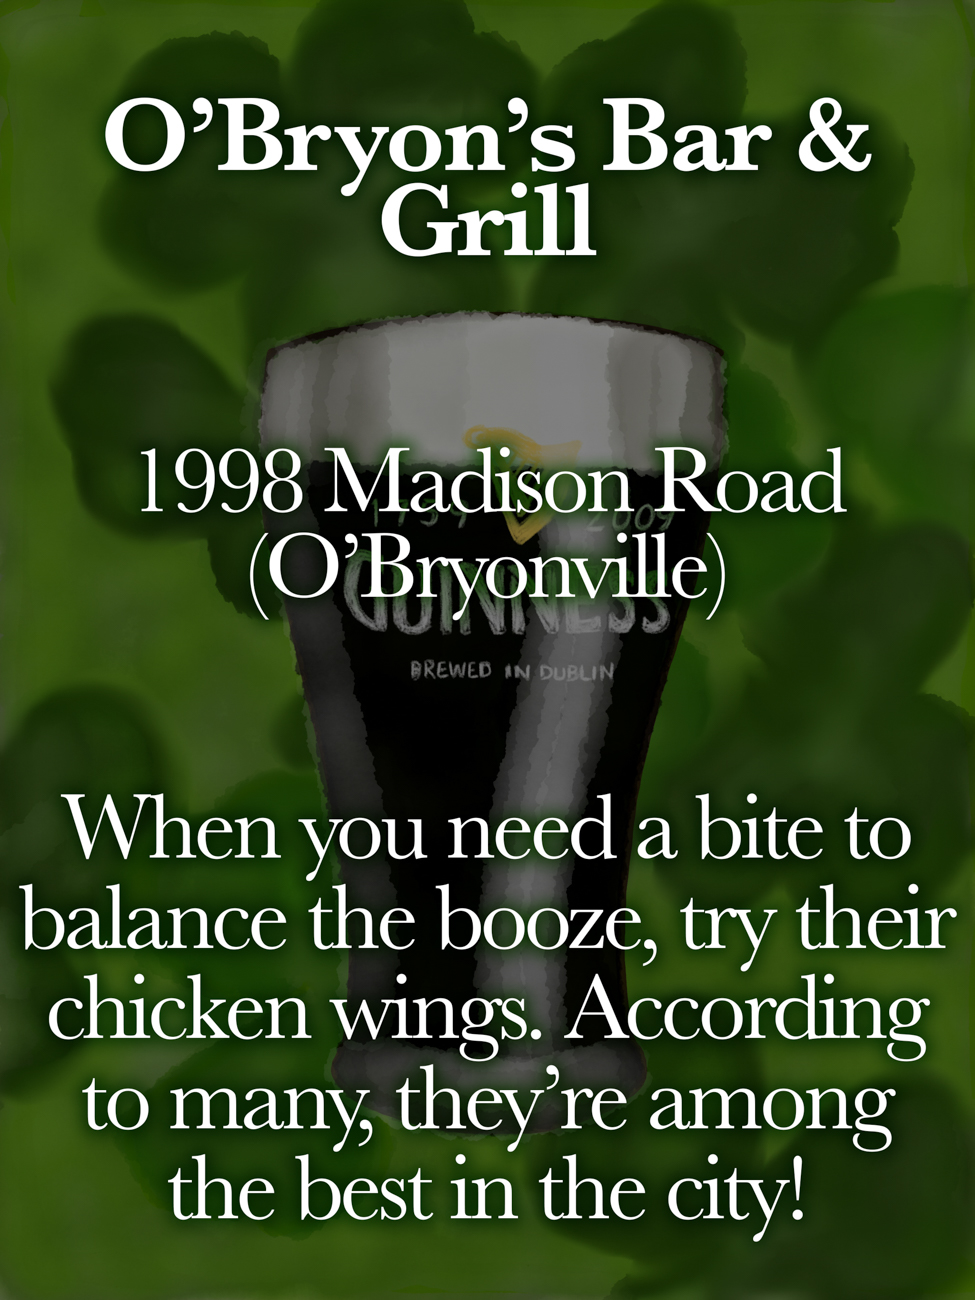 O'Bryon's Bar & Grill / ADDRESS: 1998 Madison Road (O'Bryonville) // Published: 3.16.19